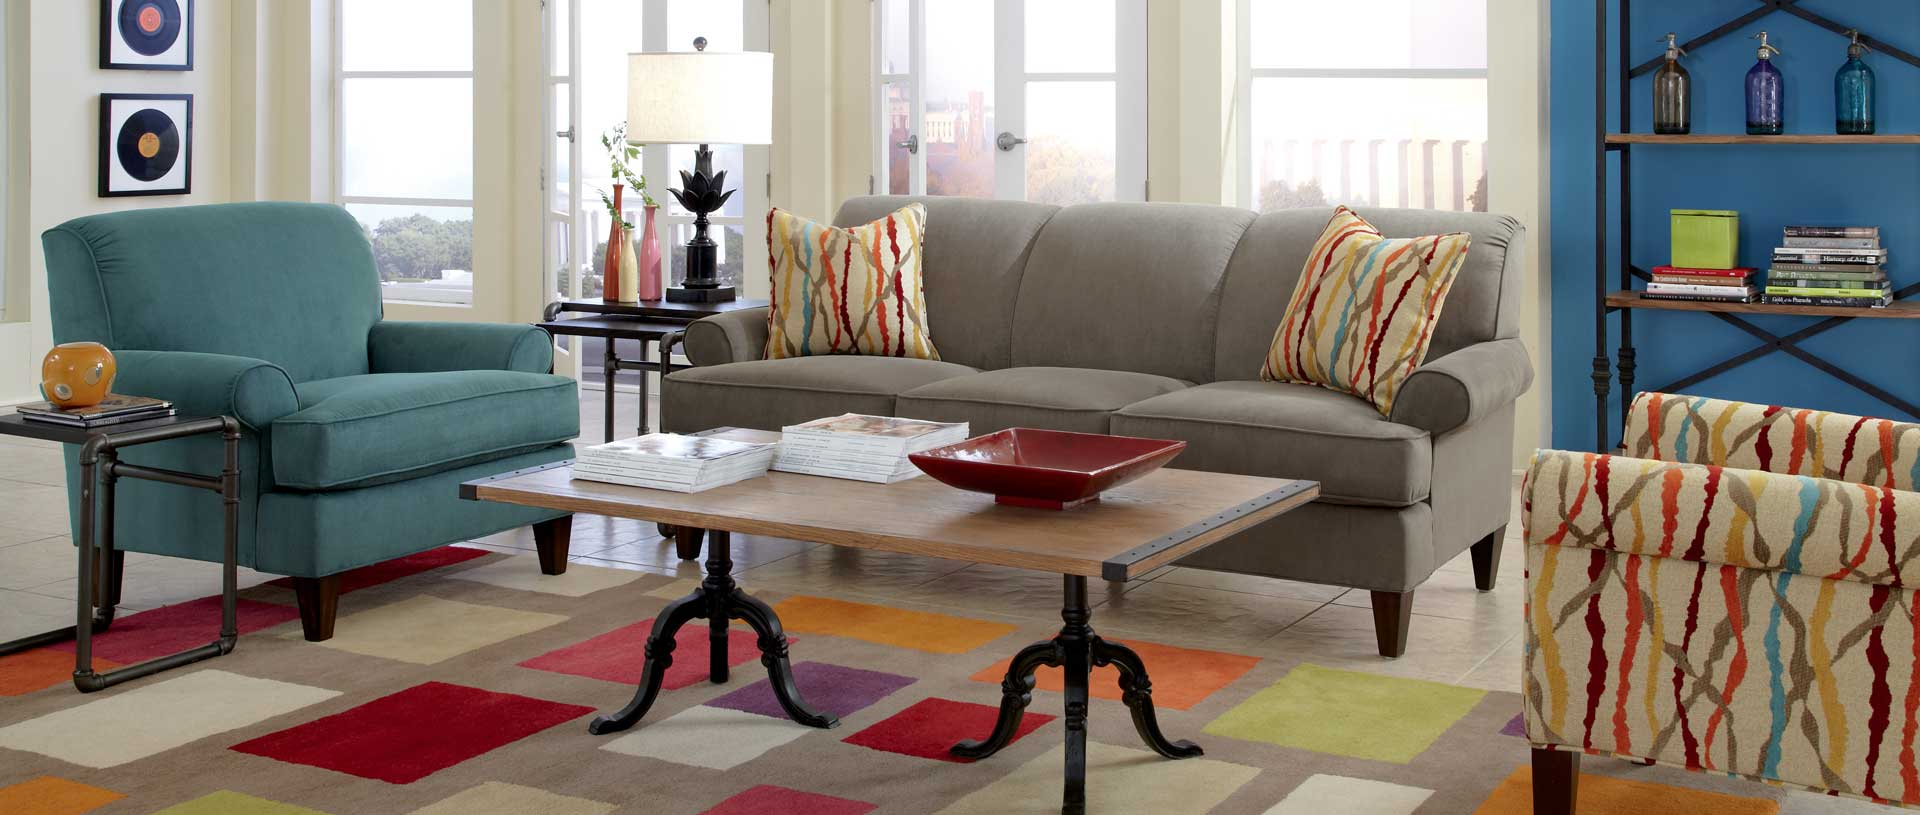 Furniture Store Bangor, Maine, Living Room, Dining Room, Bedroom ...